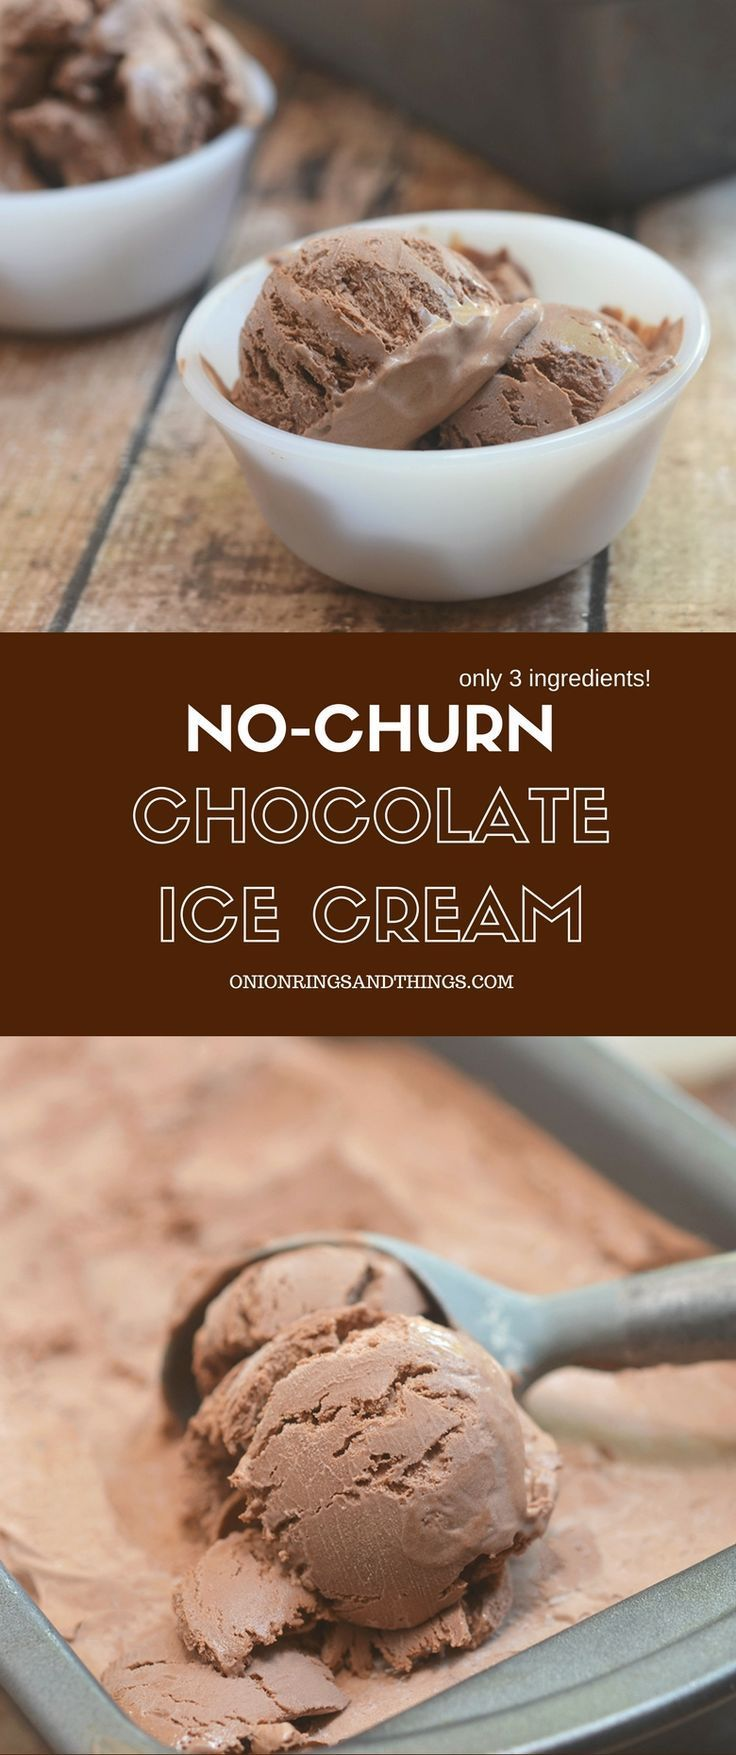 Nochurn Chocolate Ice cream made with only 3 ingredients and no ice cream maker needed Creamy and with the most intense chocolate flavor its a must for summer artesanales...